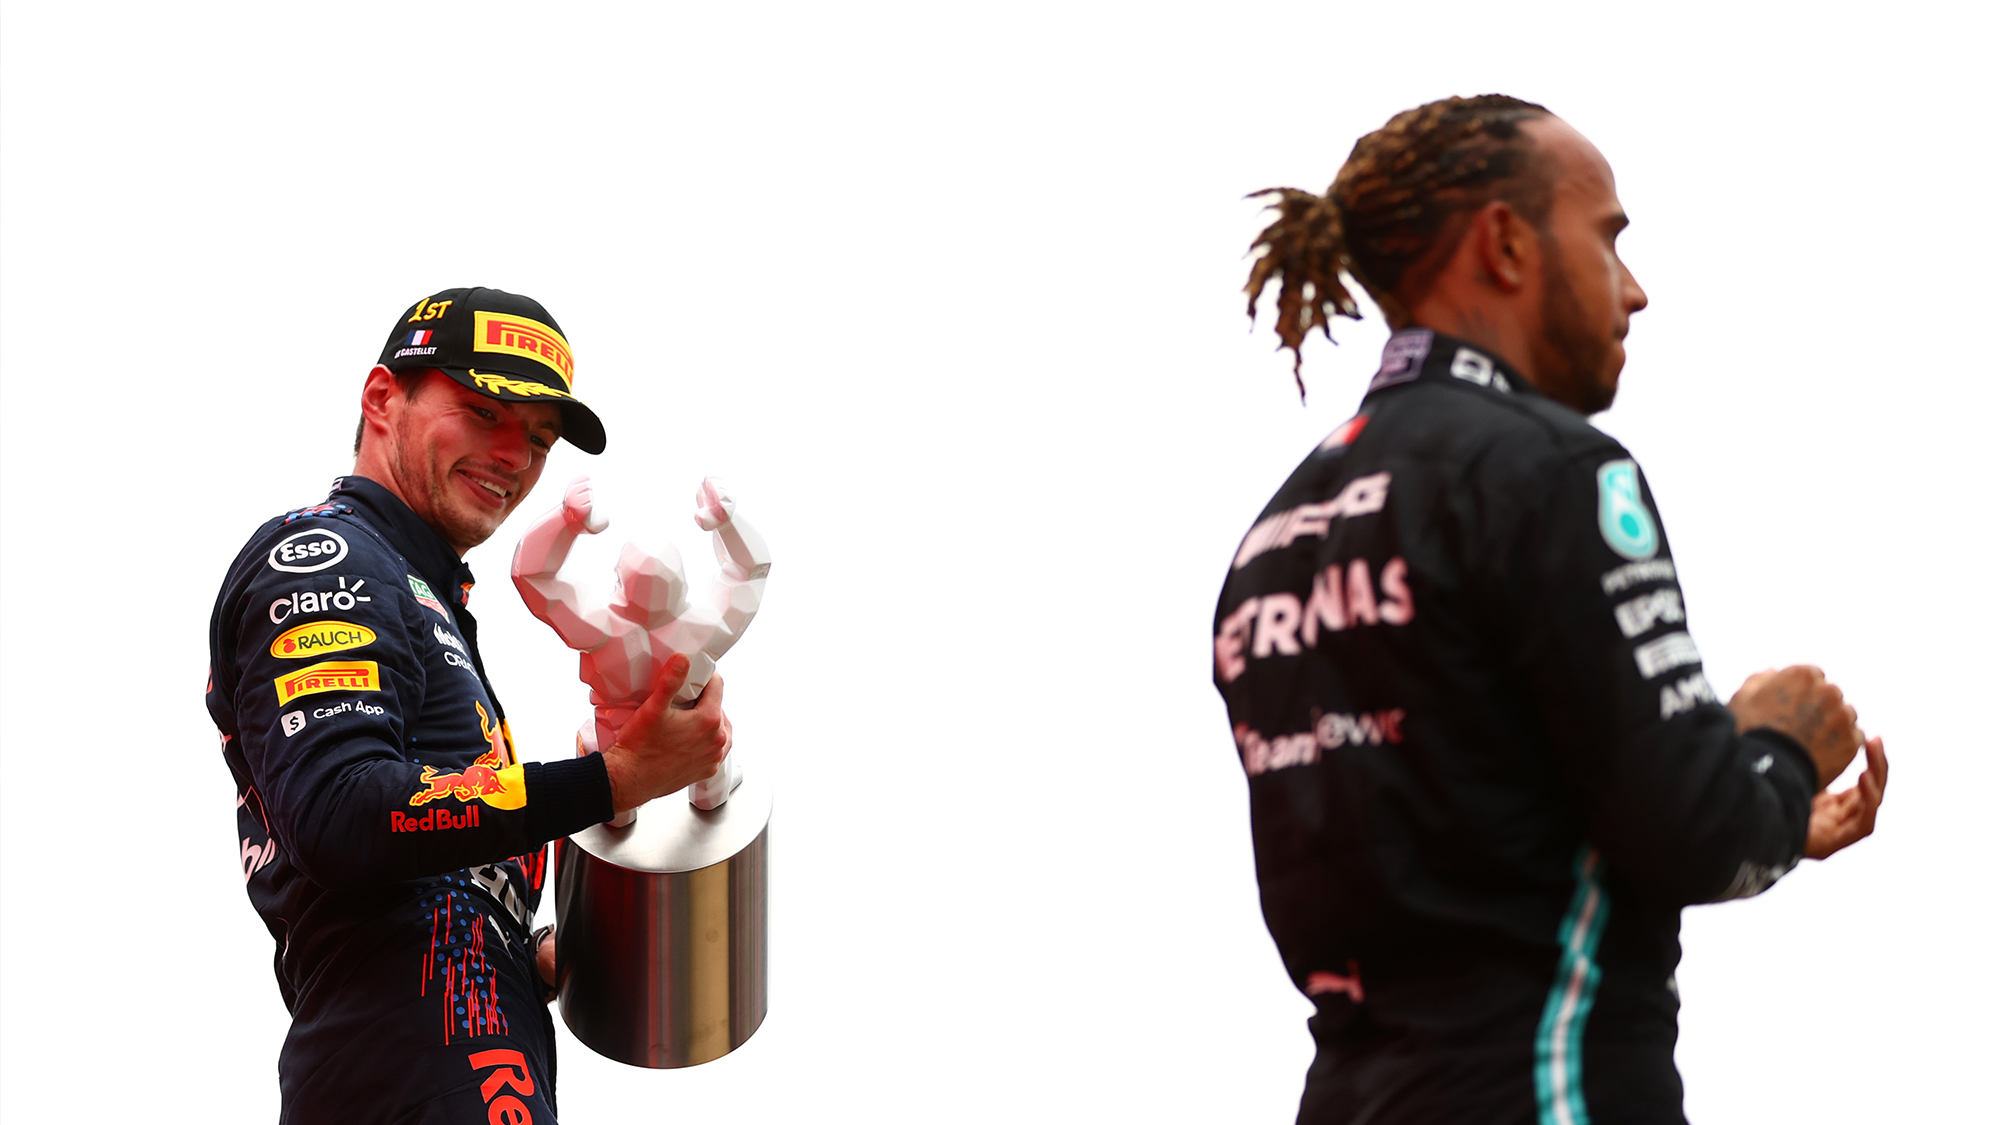 Max Verstappen examines his winning trophy at the 2021 French Grand Prix